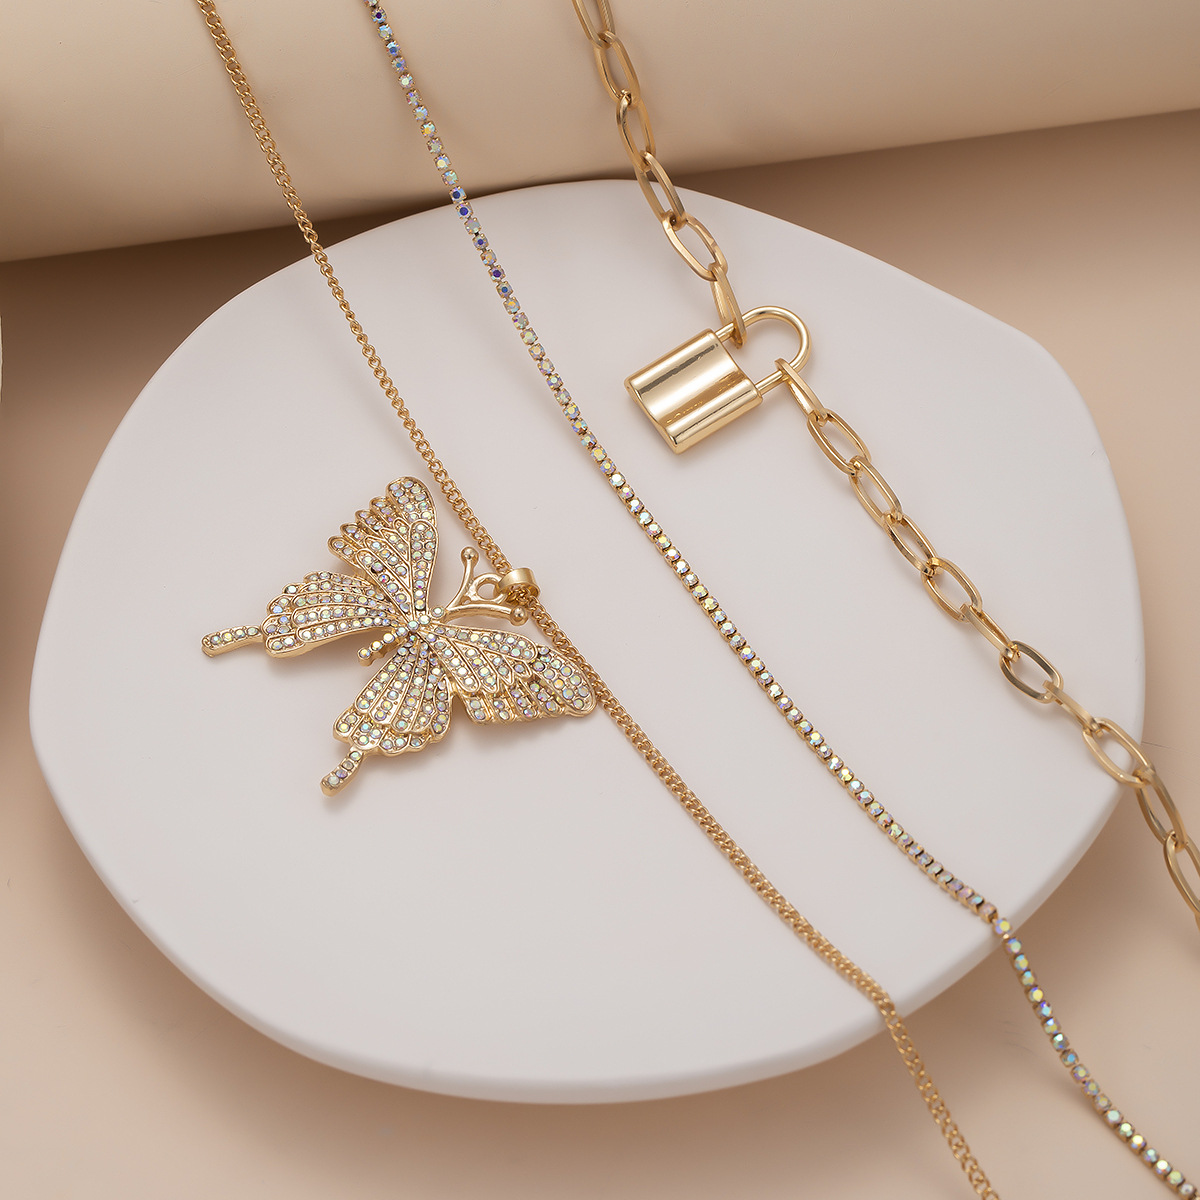 fashion jewelry retro geometric lock-shaped simple chain item decoration exaggerated large butterfly micro-set suit necklace wholesale nihaojewelry NHXR225462